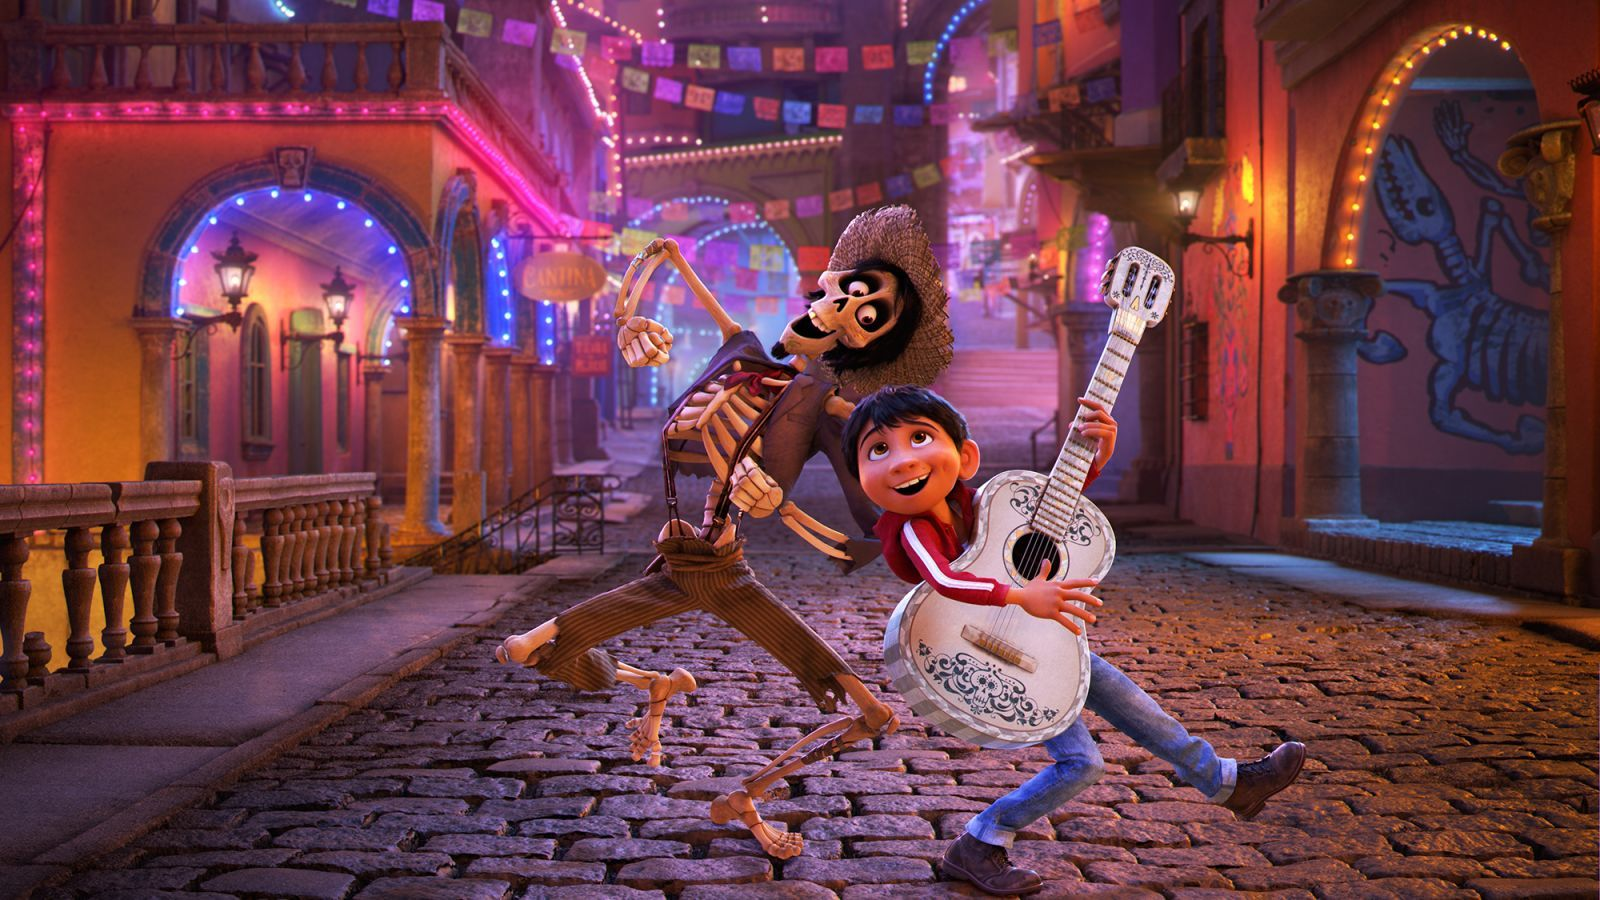 The winning Coco sends Pixar to the great beyond — The A.V